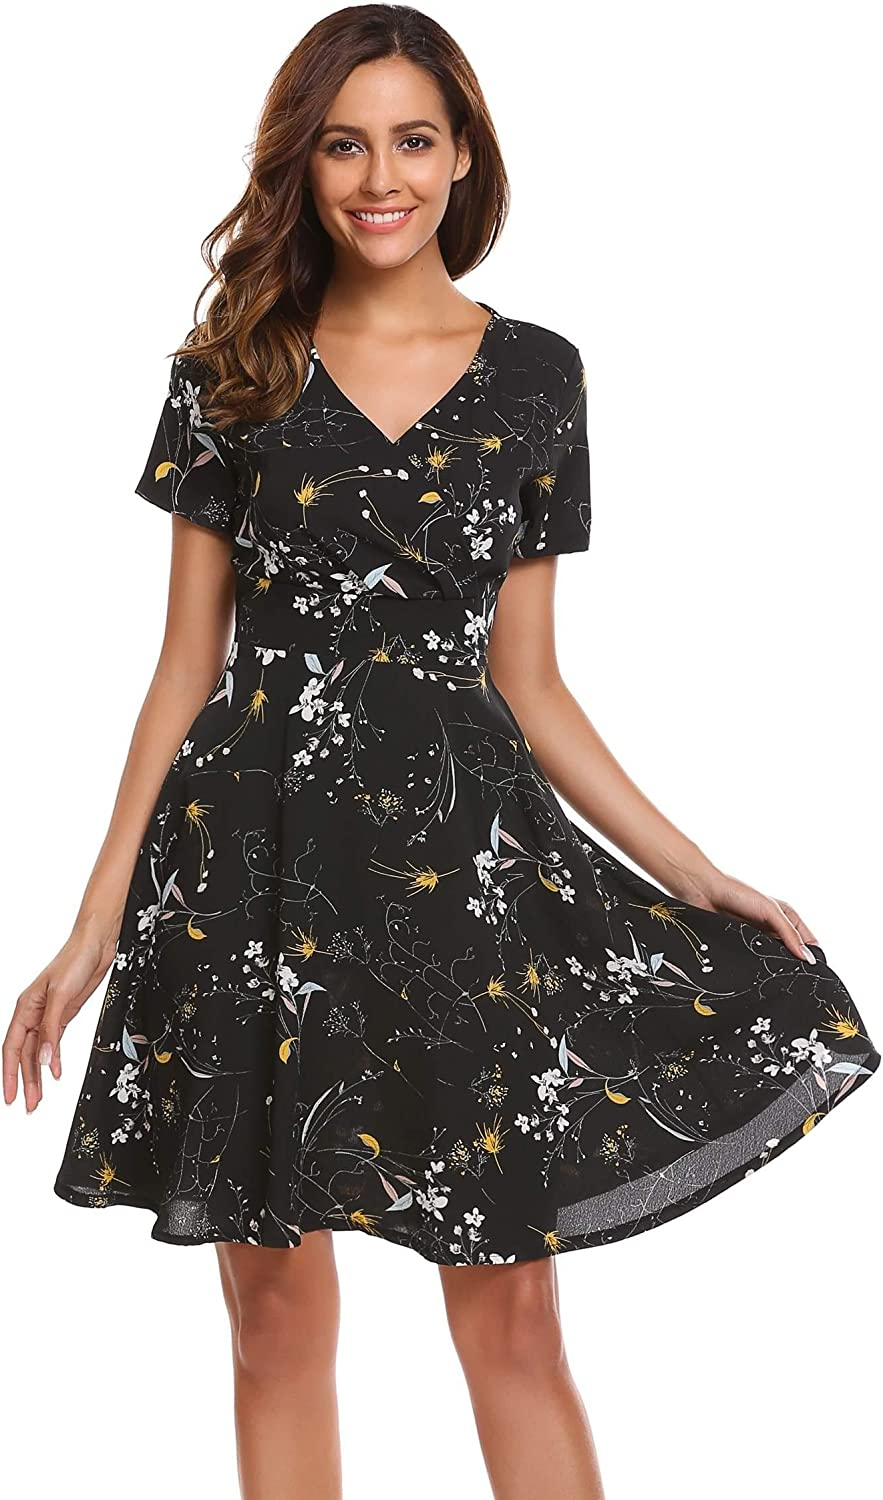 BEAUTYTALK Women's Cute V Neck Short Sleeve Floral Printed Casual A Line Flare Retro Wrap Dress